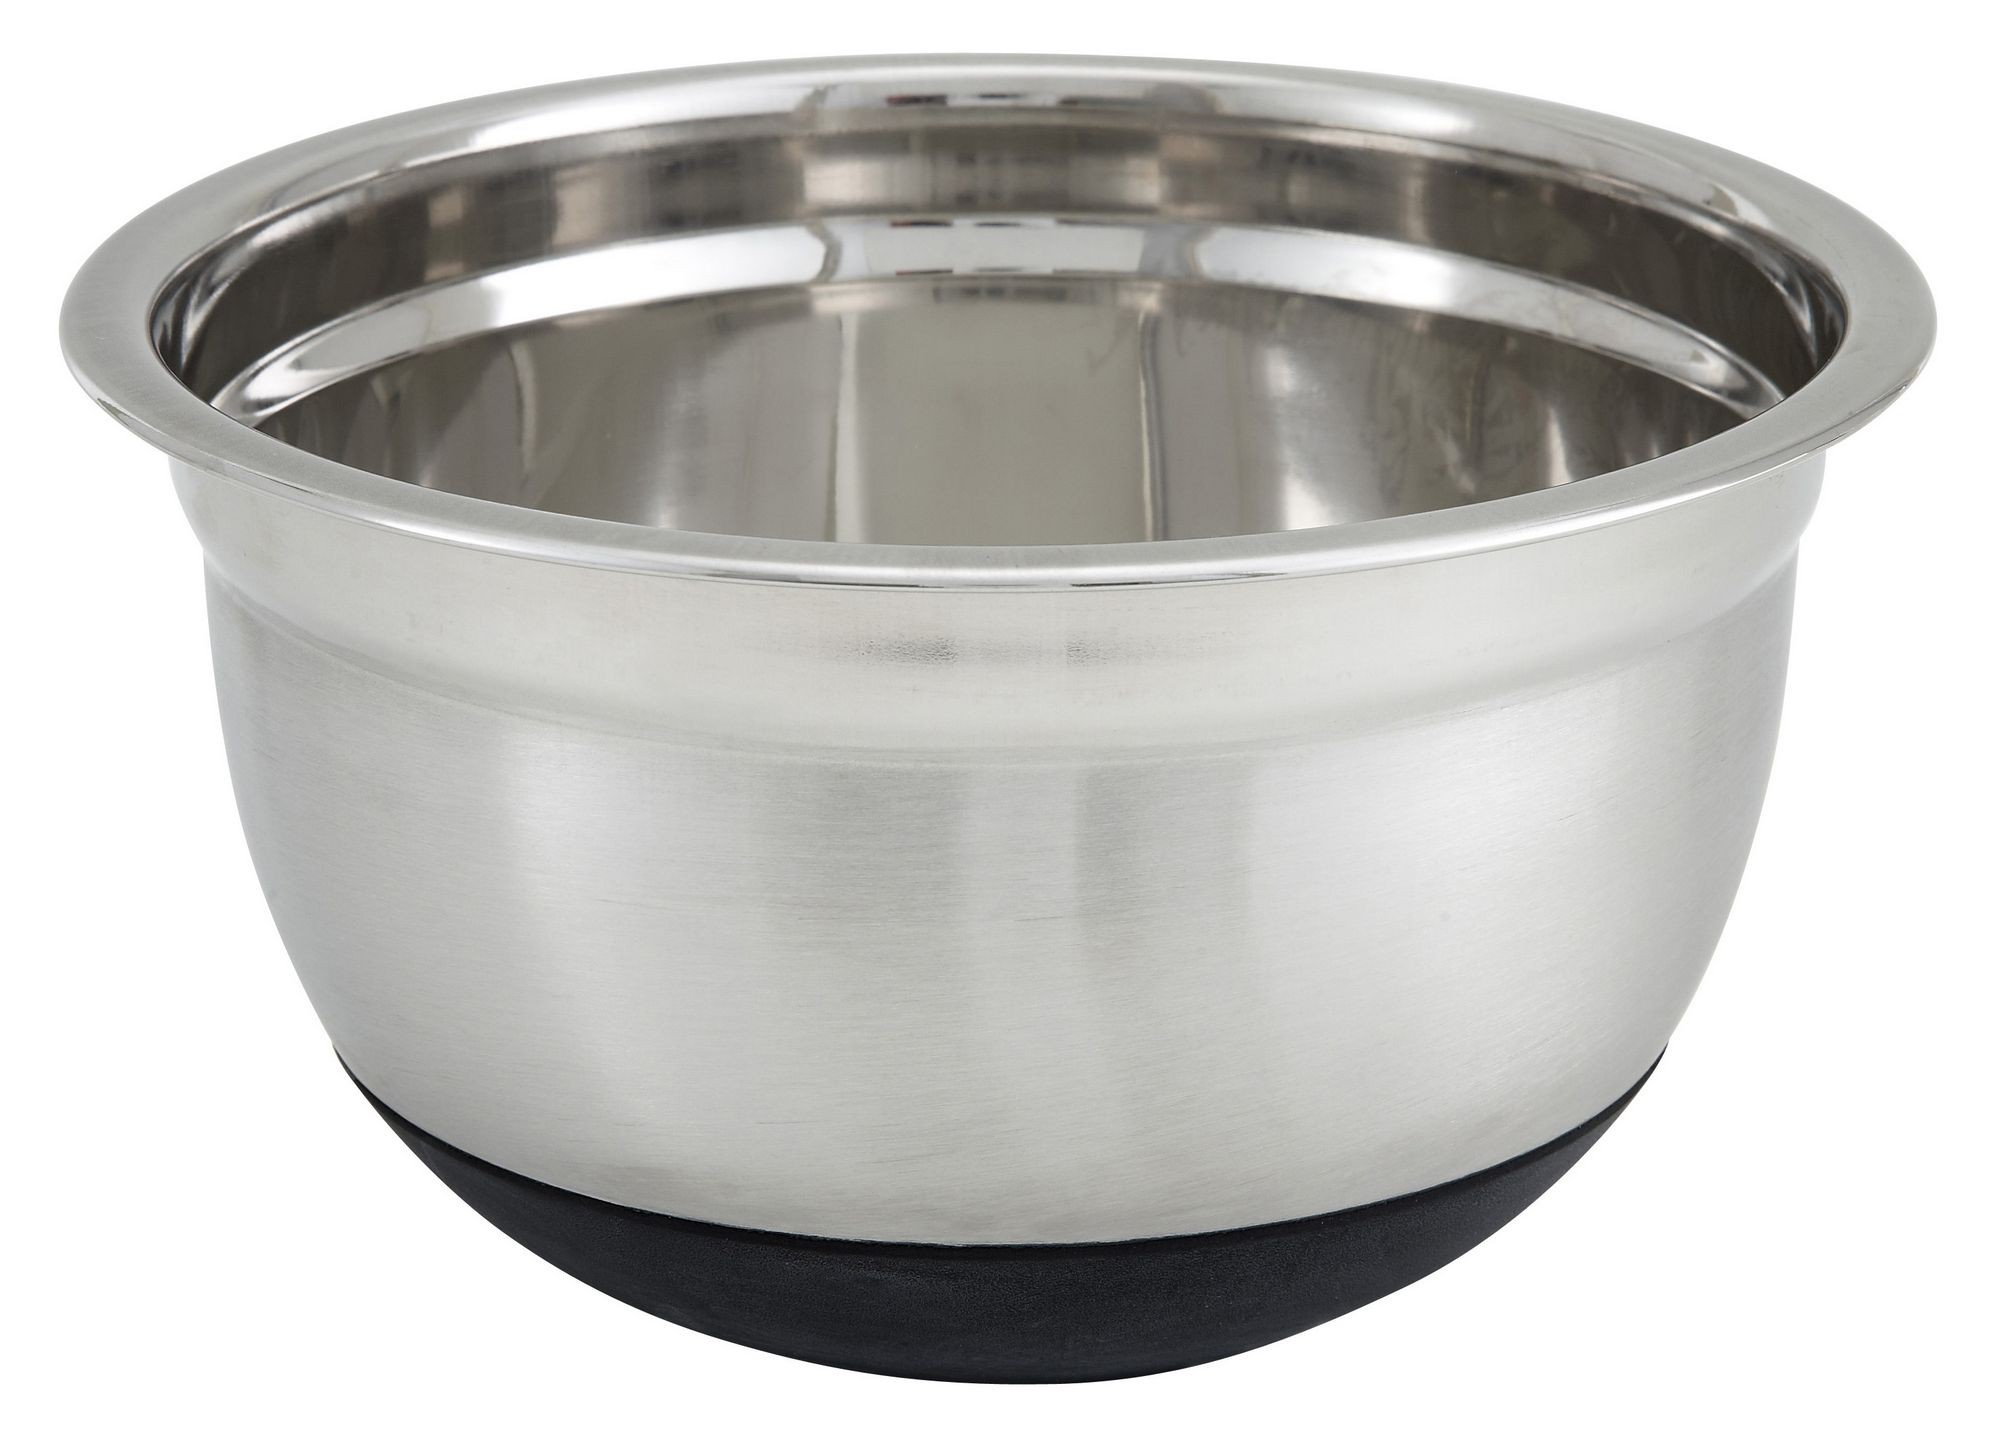 Winco MXRU-150 German Mixing Bowl 1.5 Qt. with Silicone Base